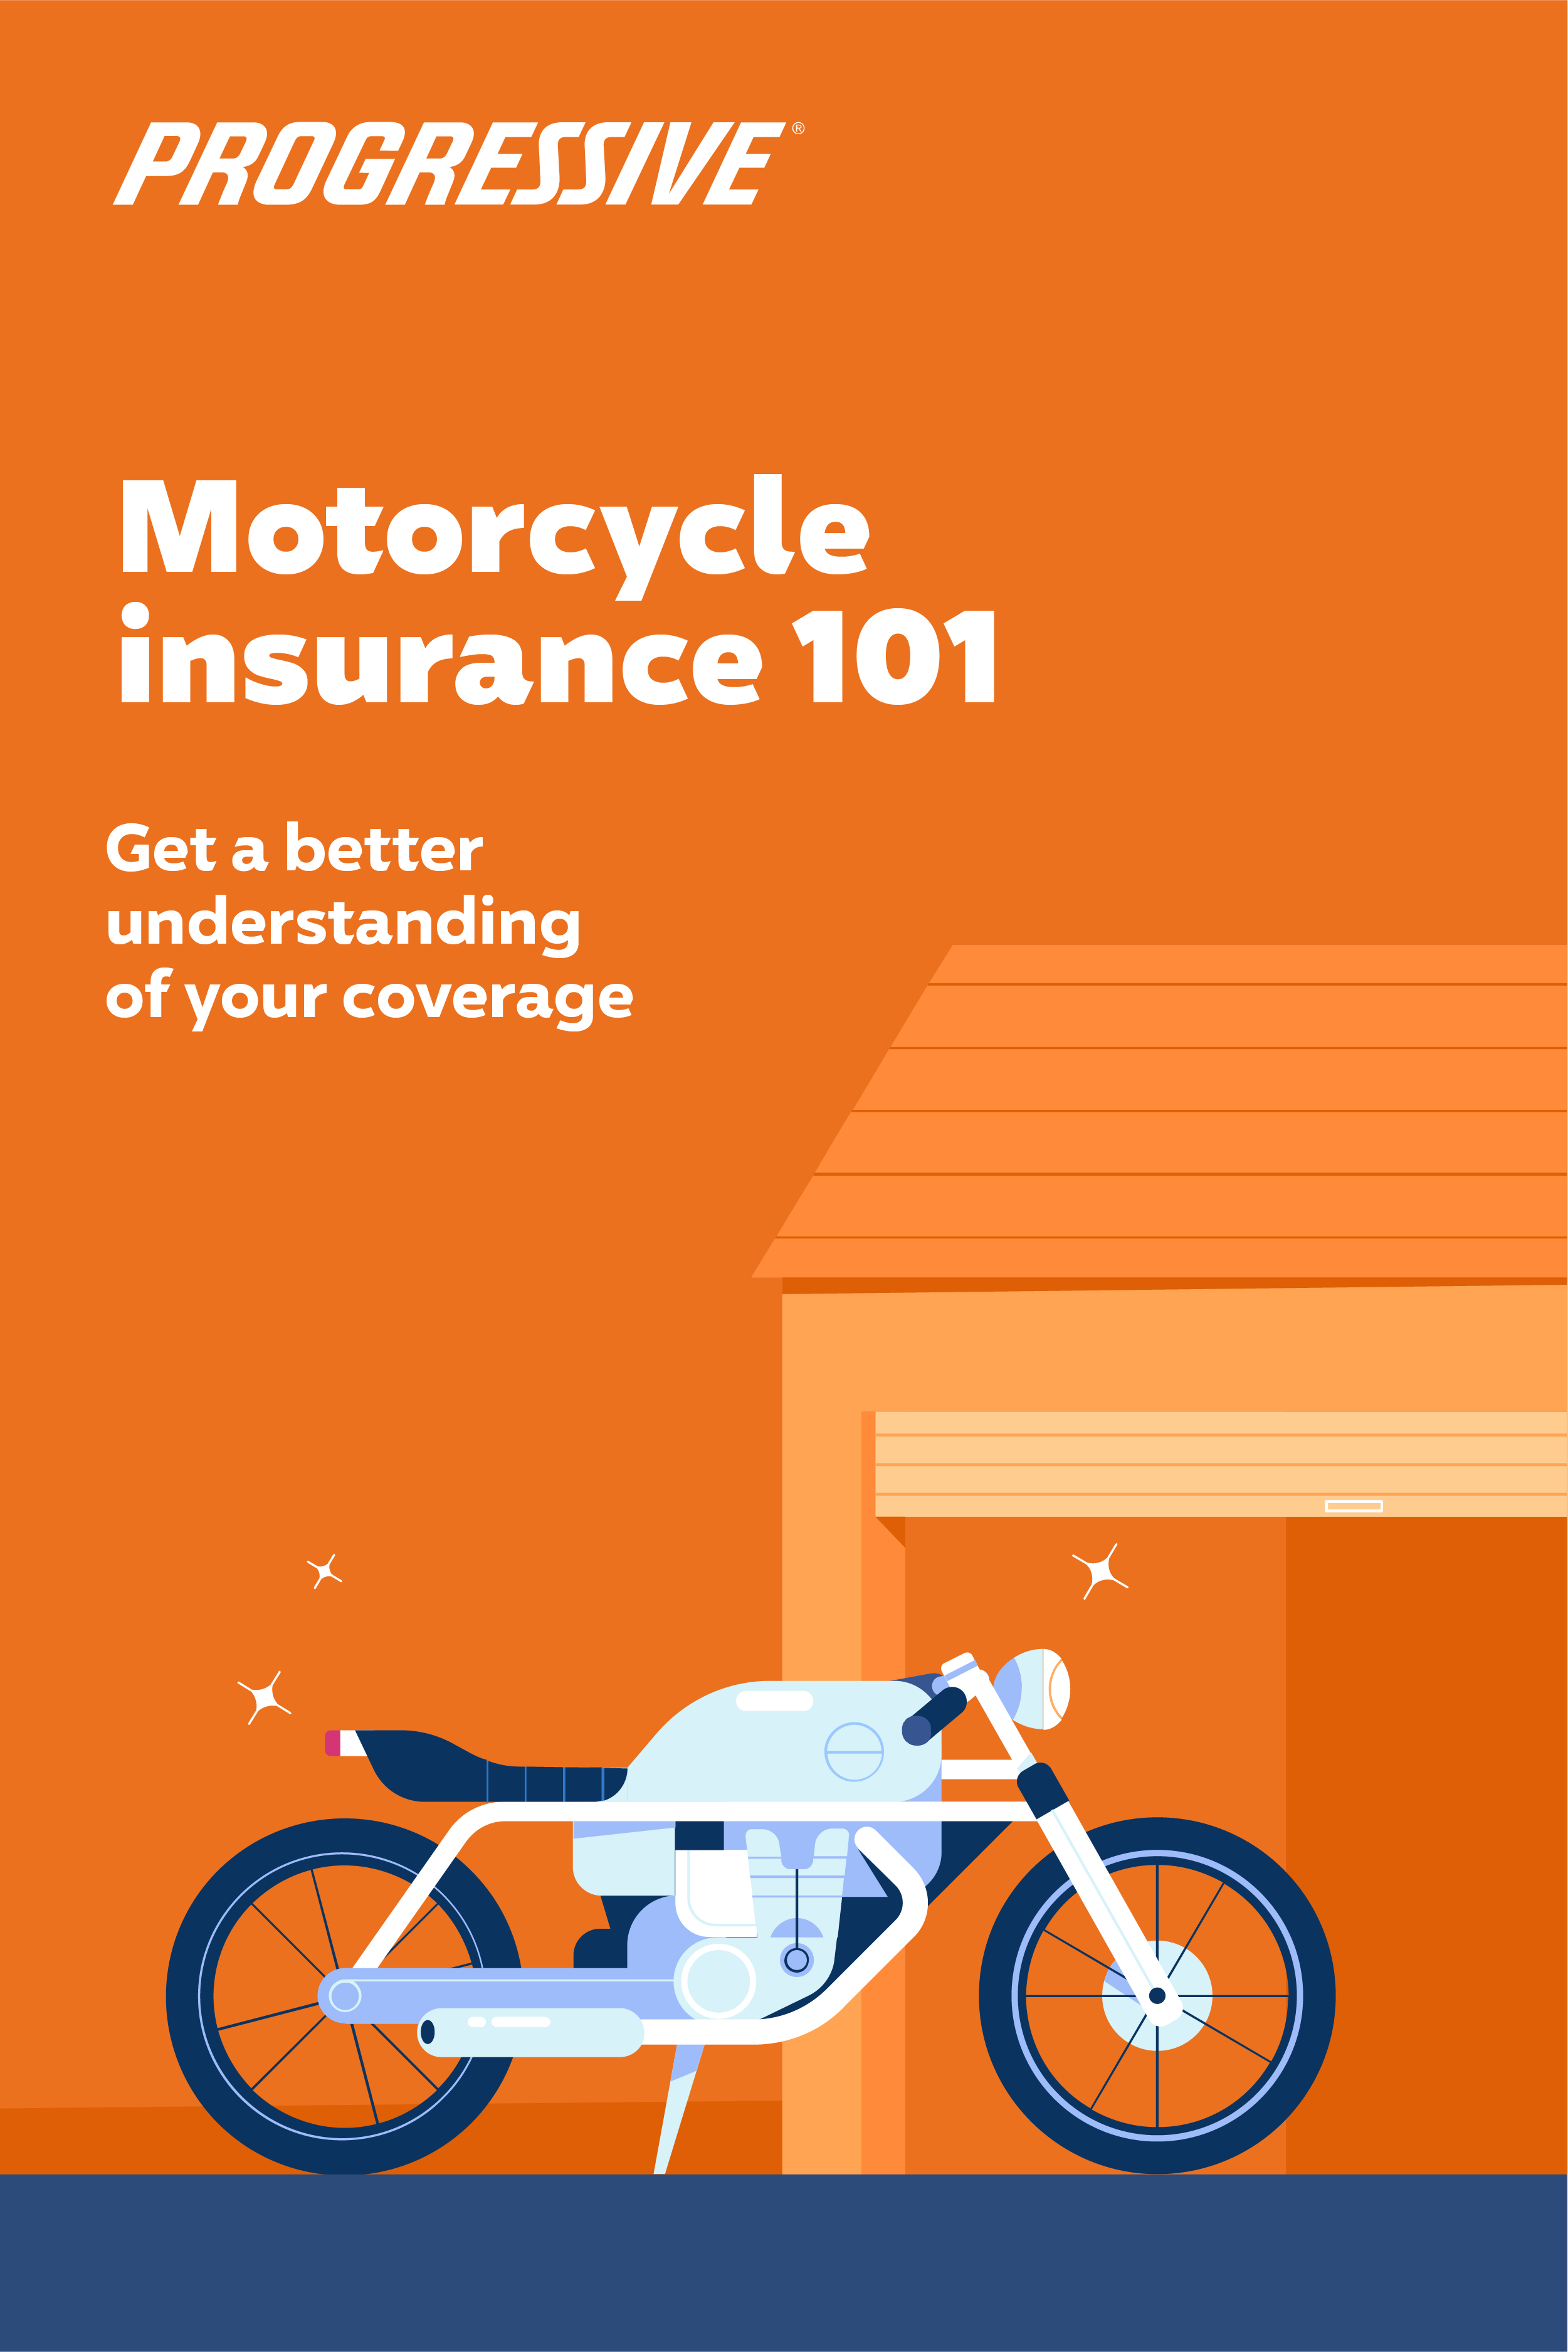 Do you even need motorcycle insurance? Find out what it is